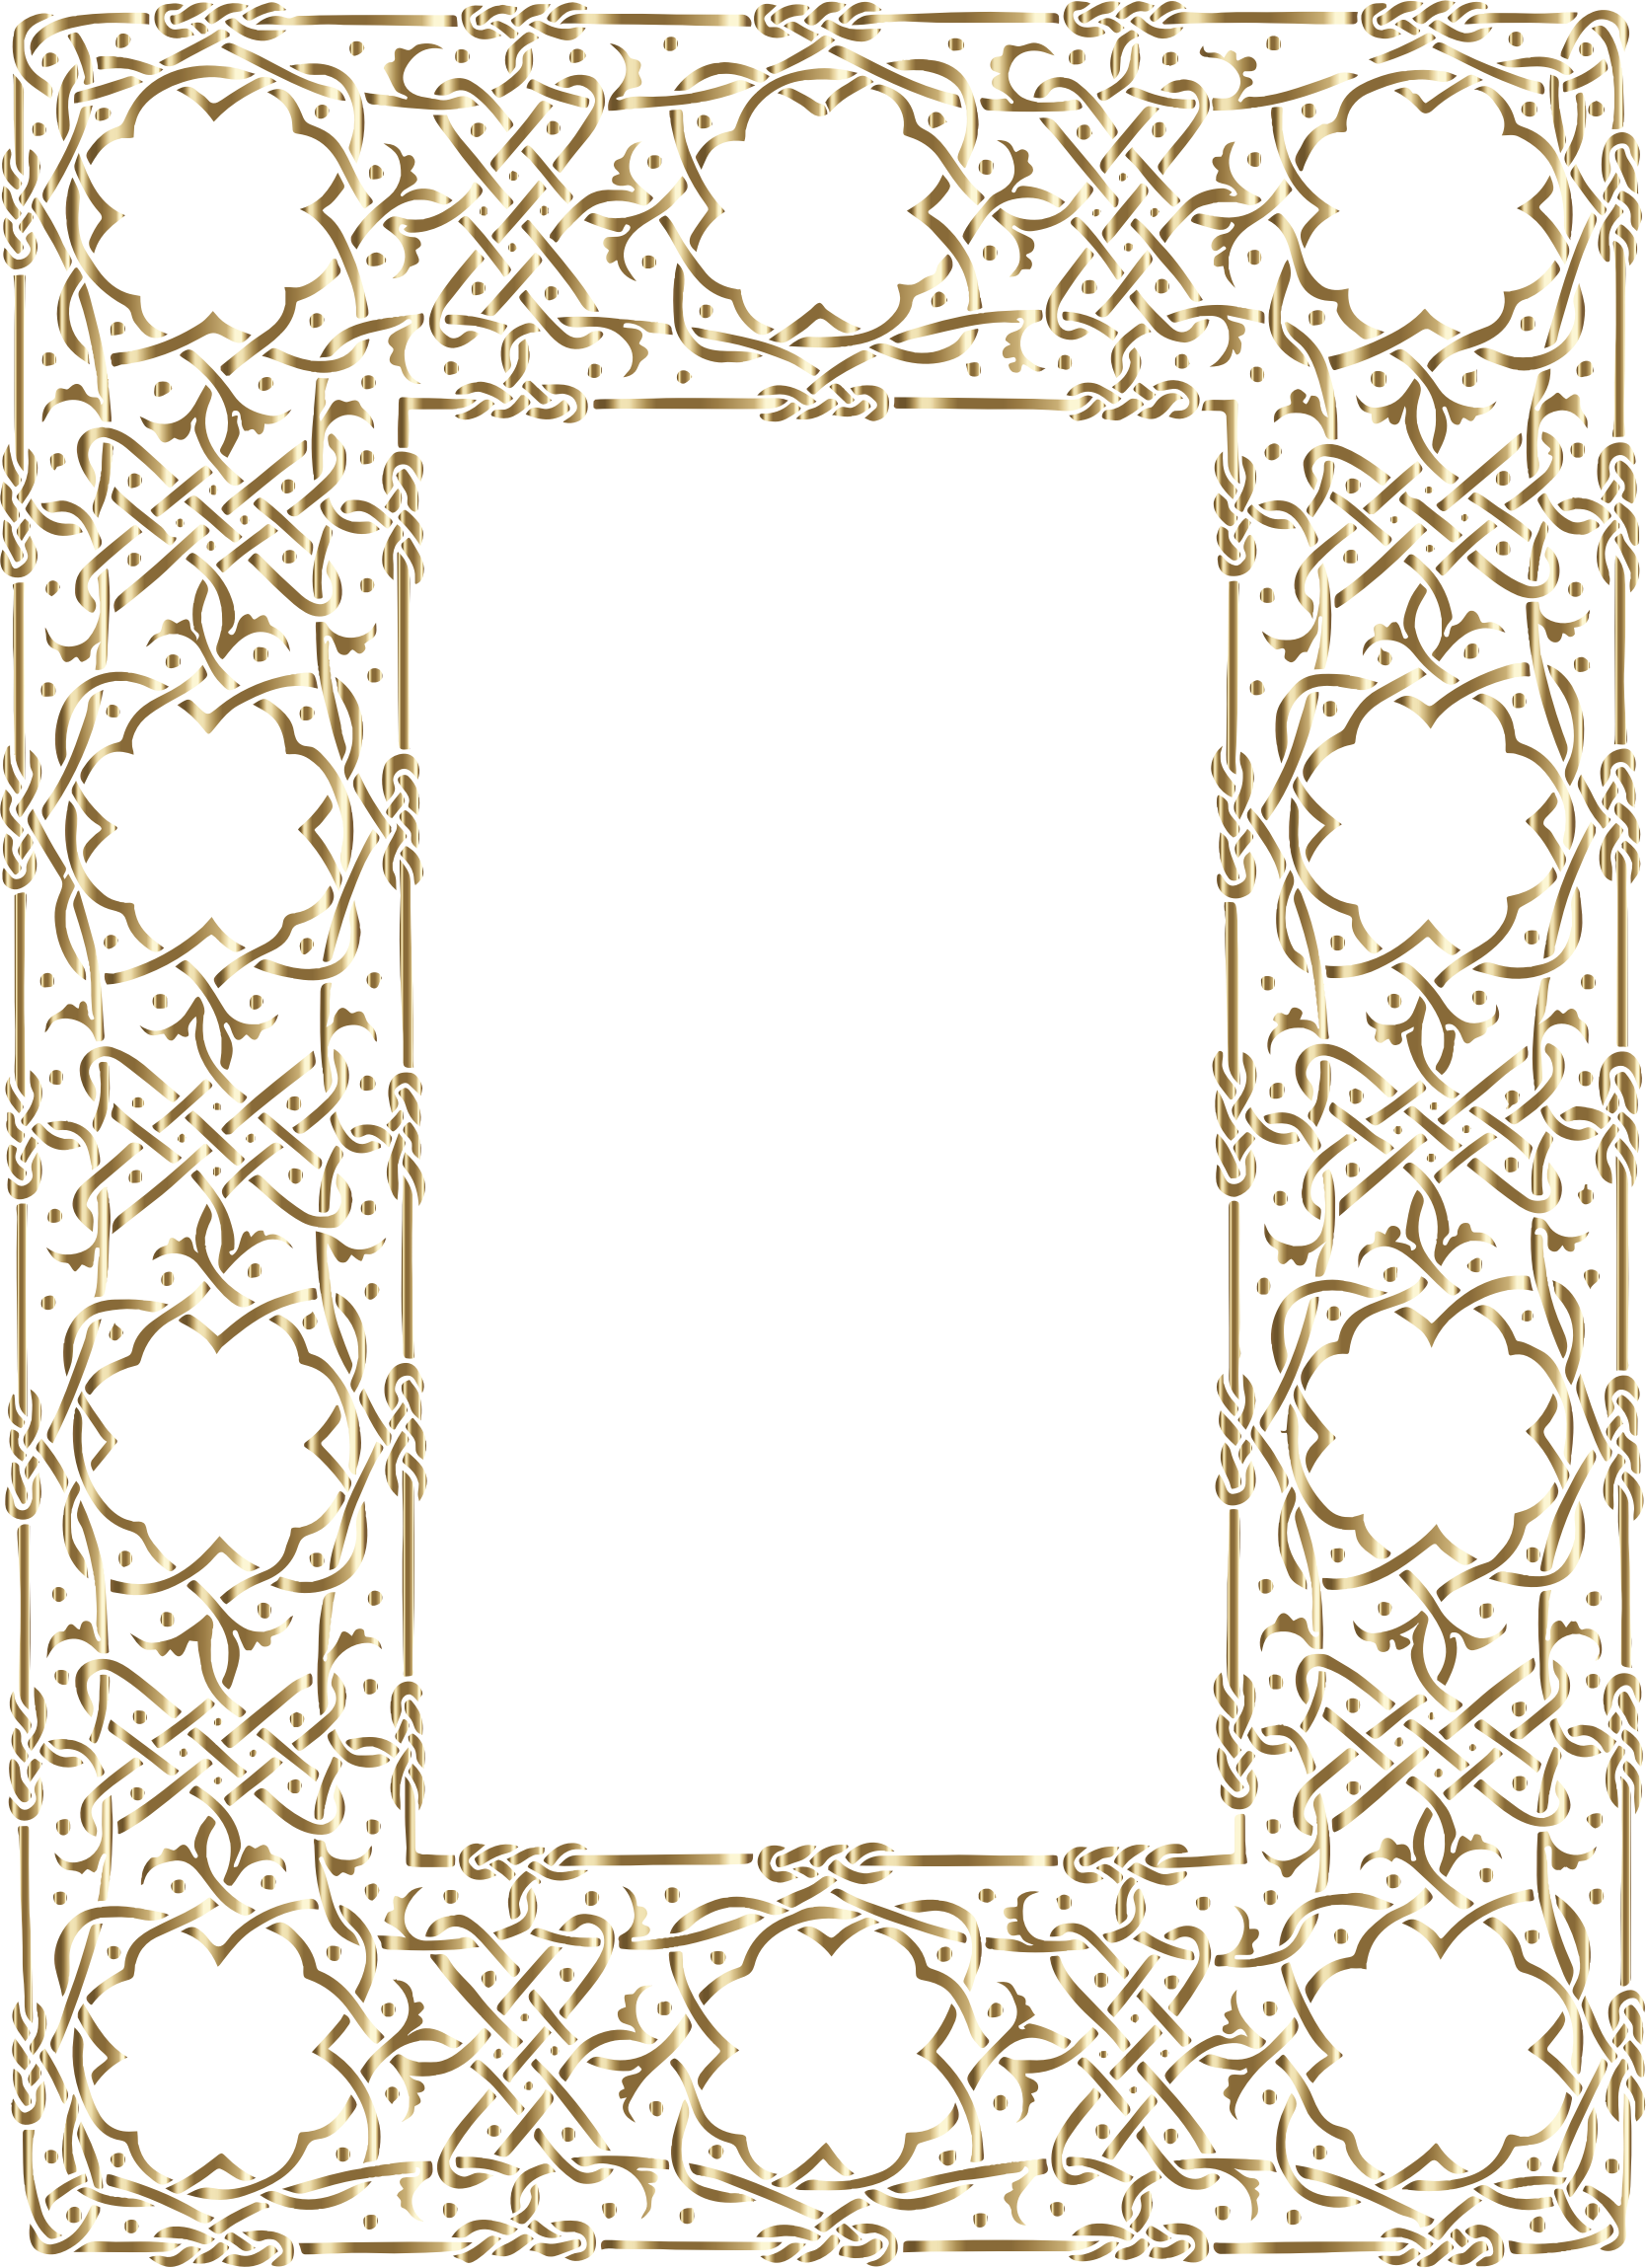 Clipart - Gold Ornate Geometric Frame No Background